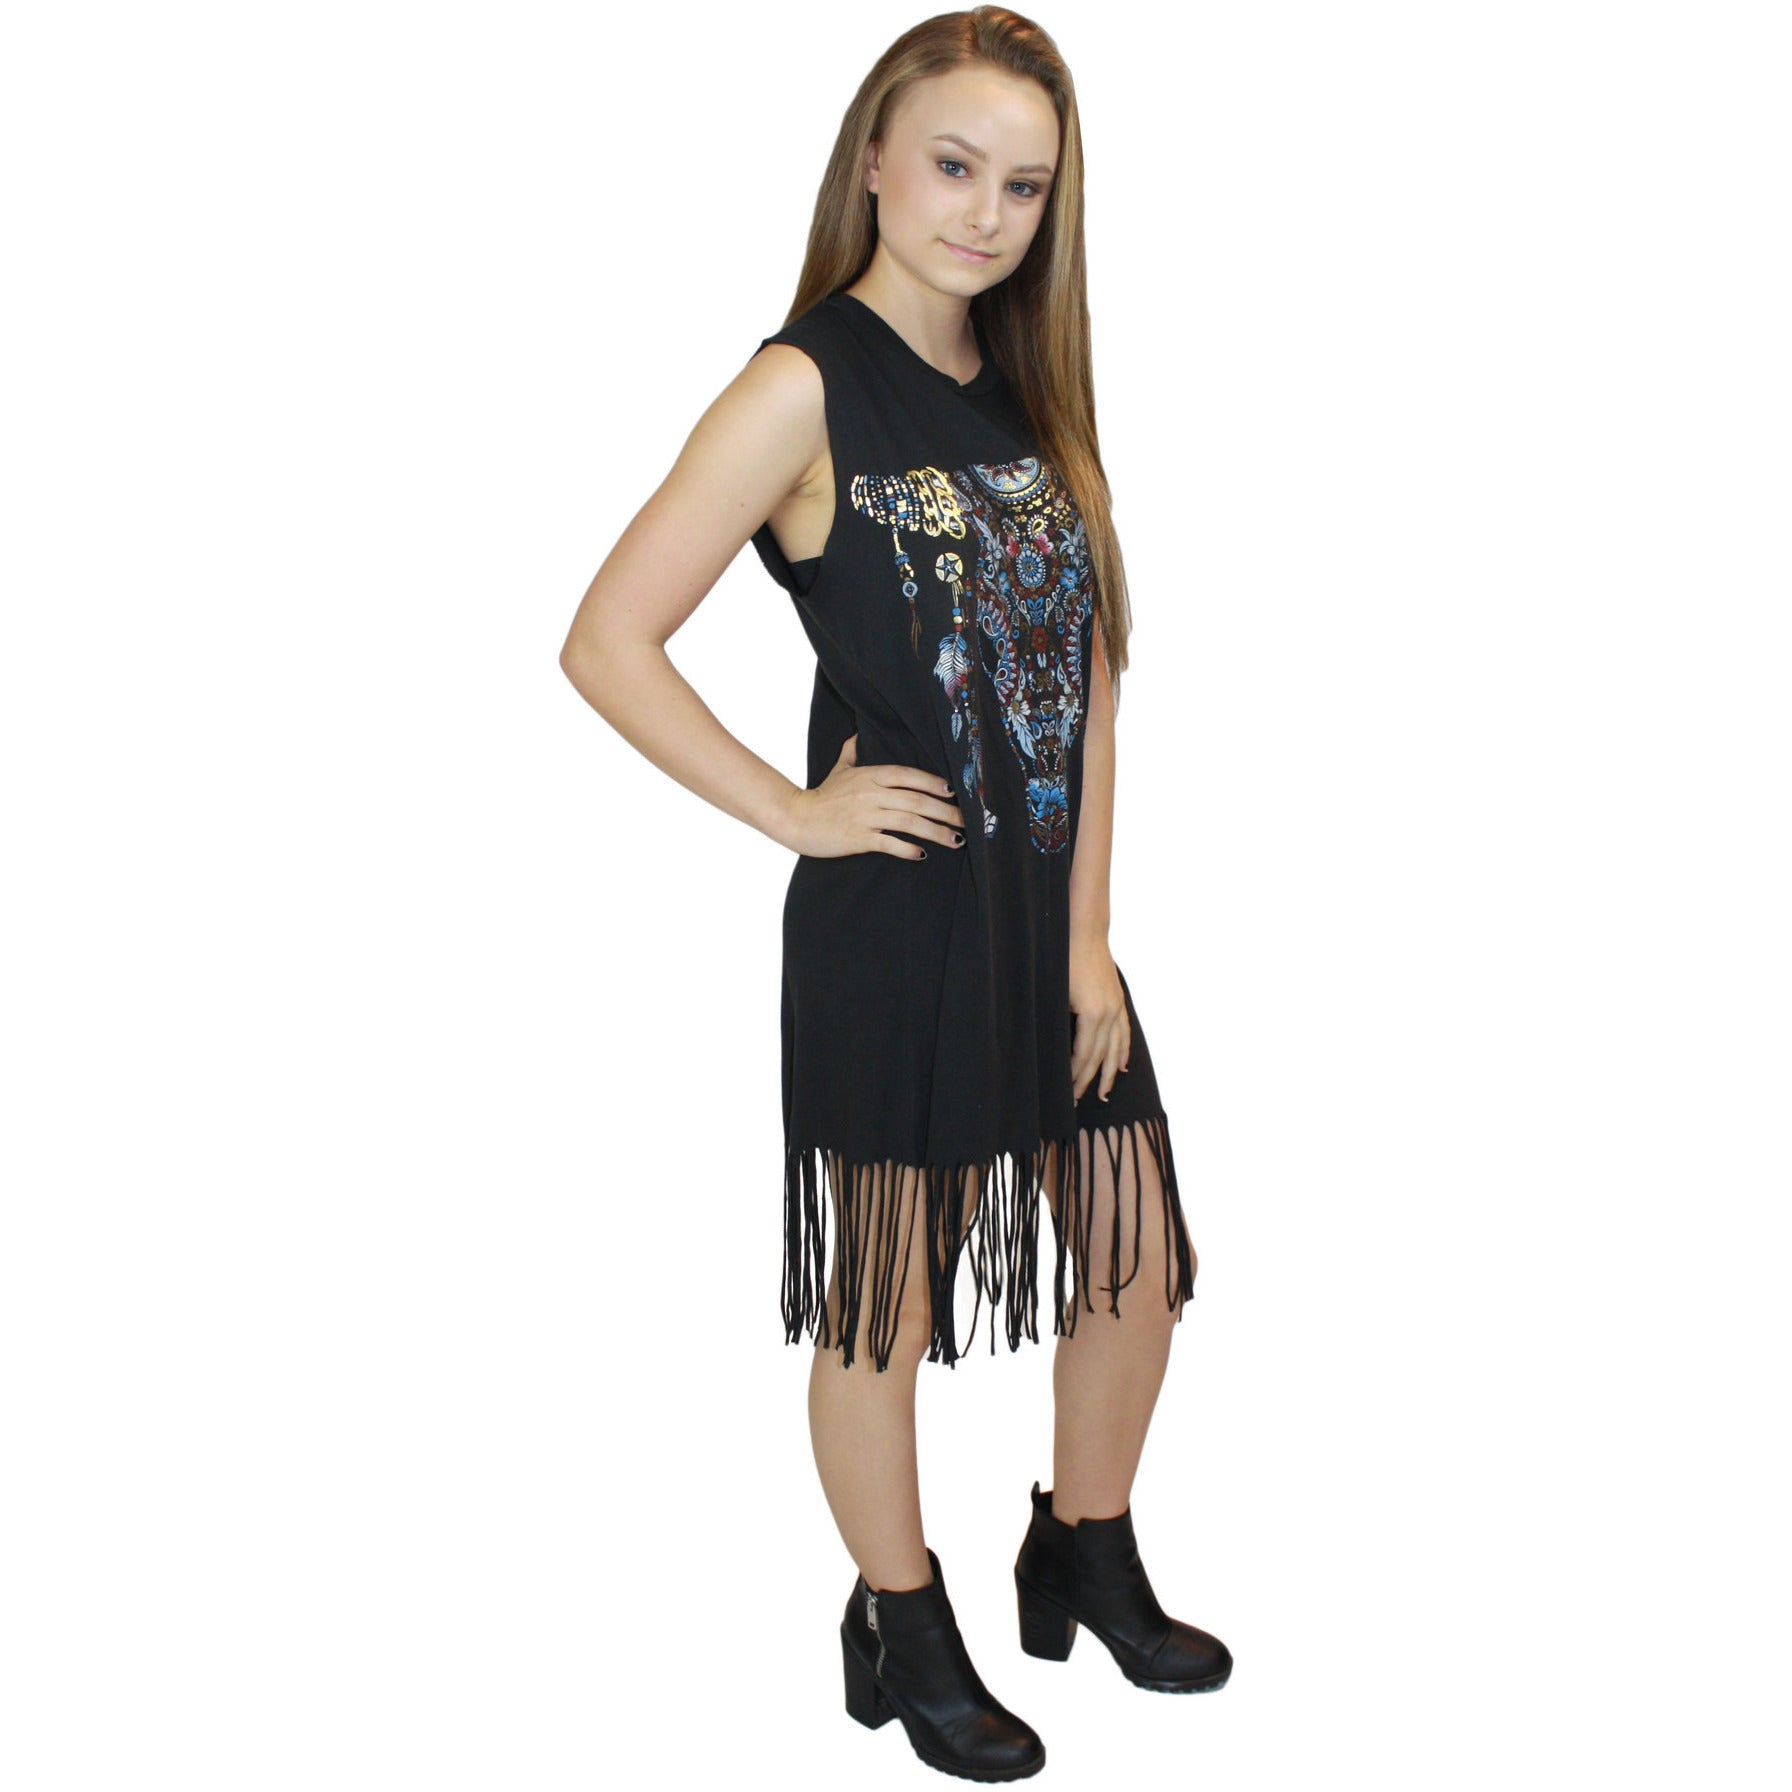 Gin Sleeveless Fringe Dress Patterned Bull